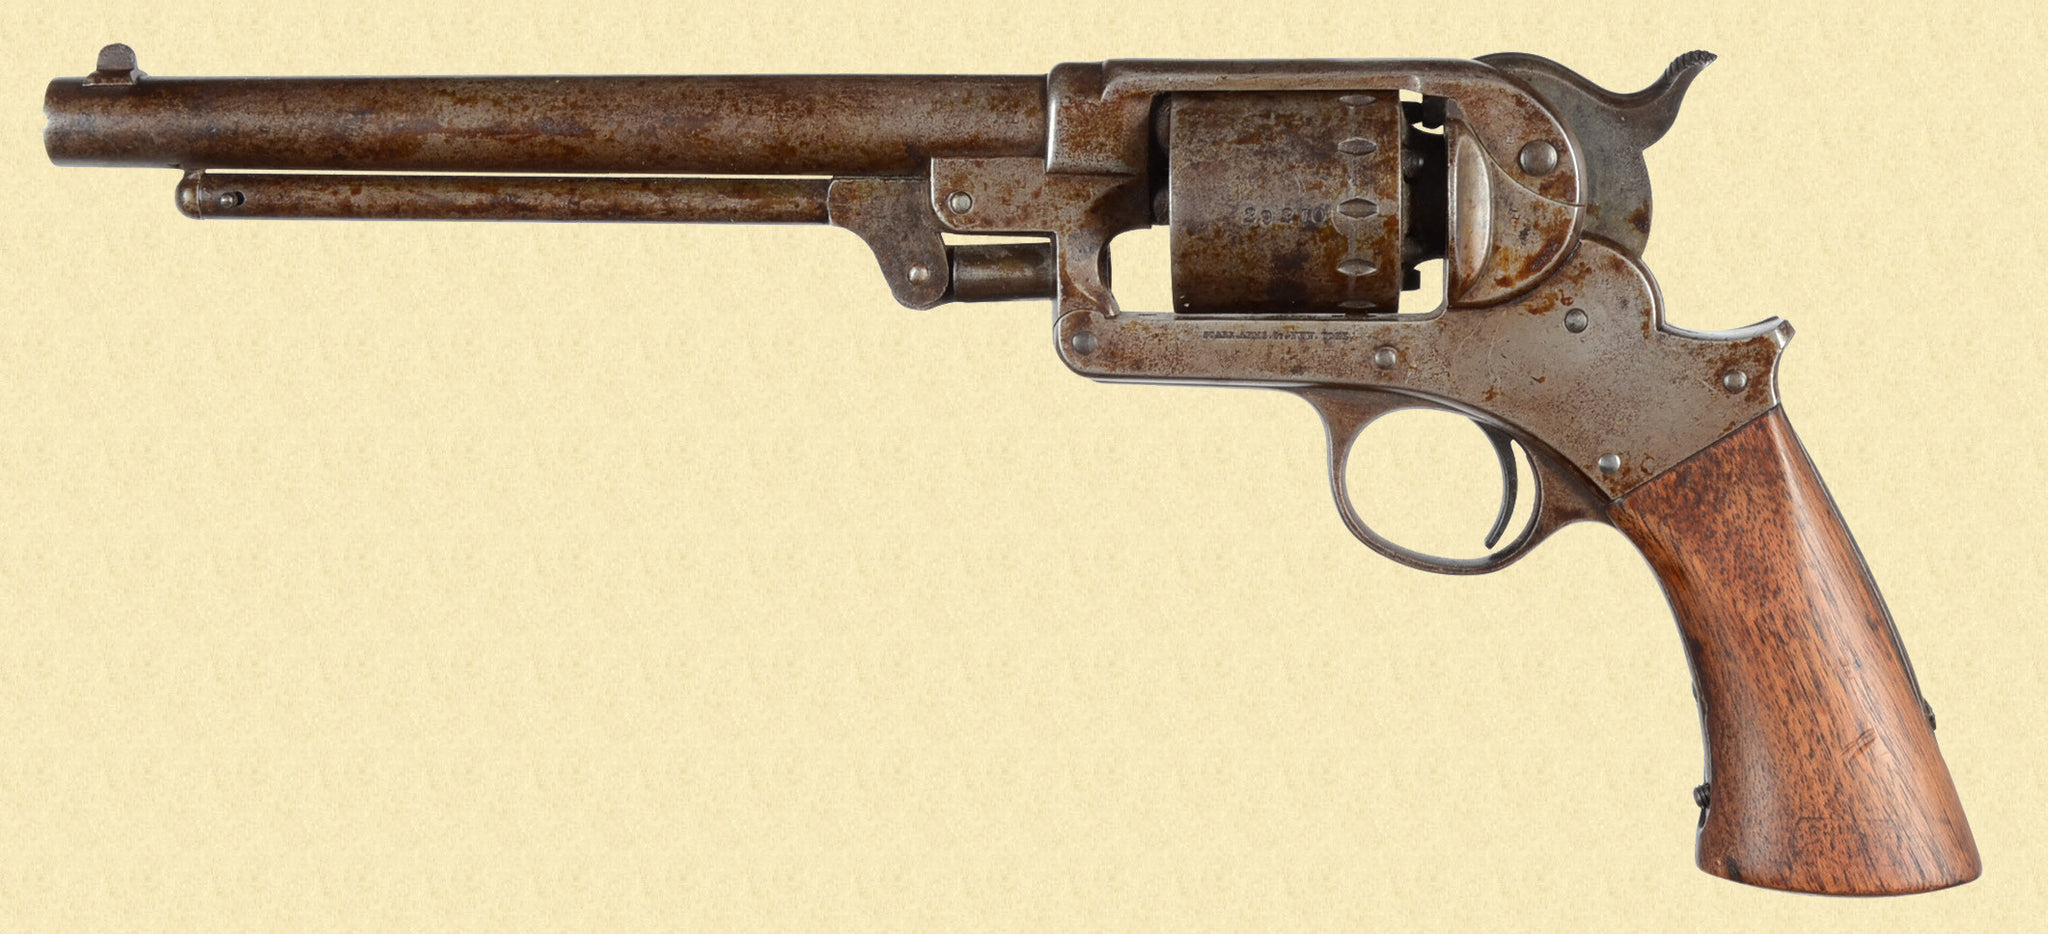 STARR ARMS MODEL 1863 ARMY REVOLVER